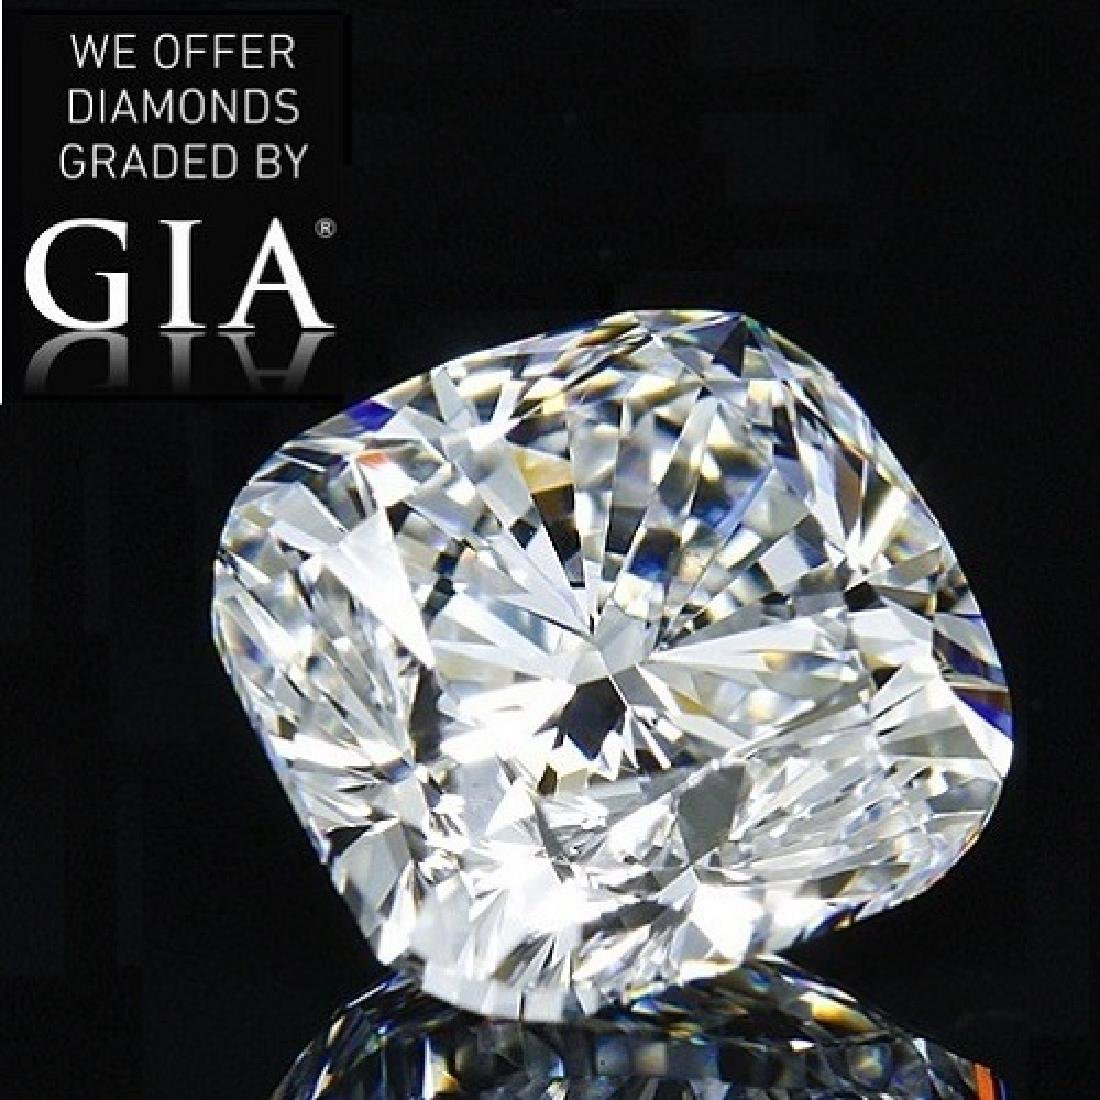 5.02 ct, Color F/VVS2, Cushion cut Diamond